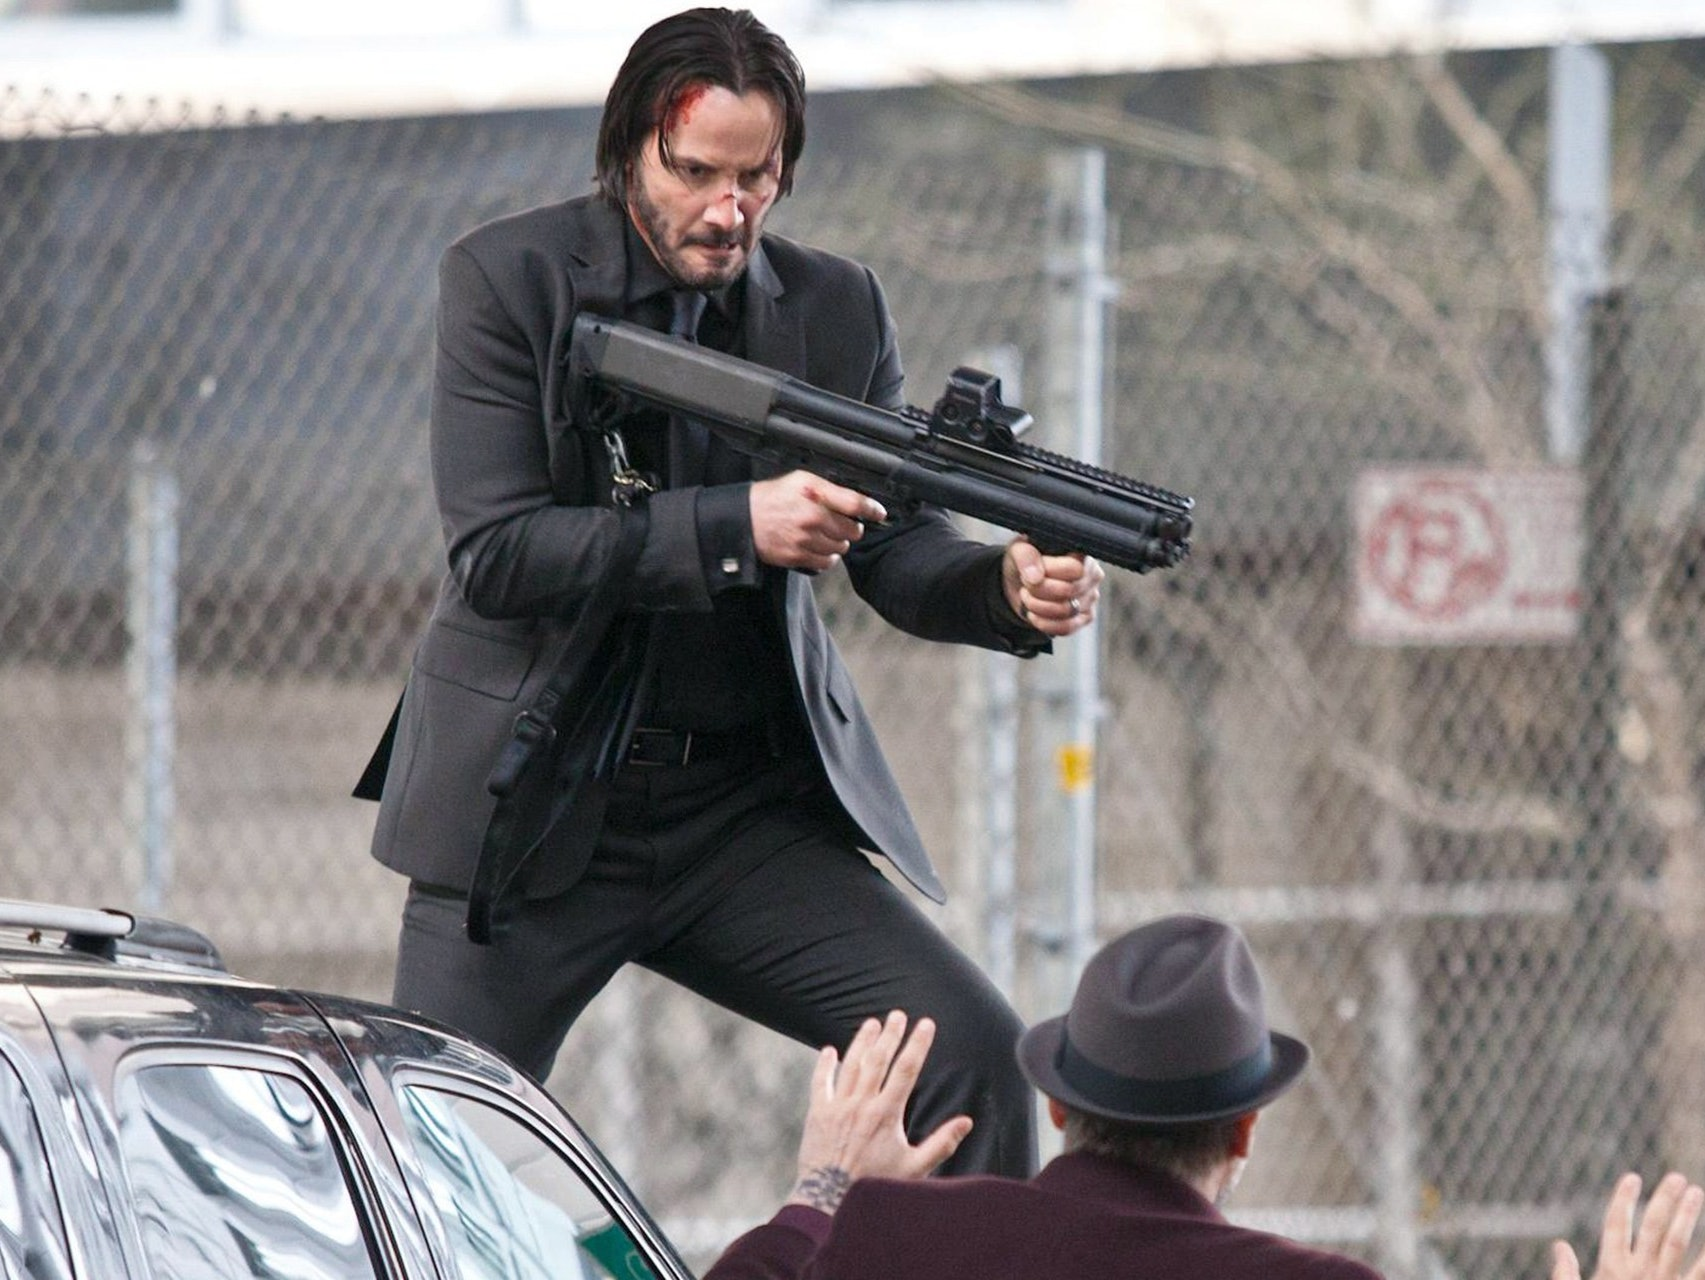 5 Key Fight Scenes That Influenced the 'John Wick' Movies